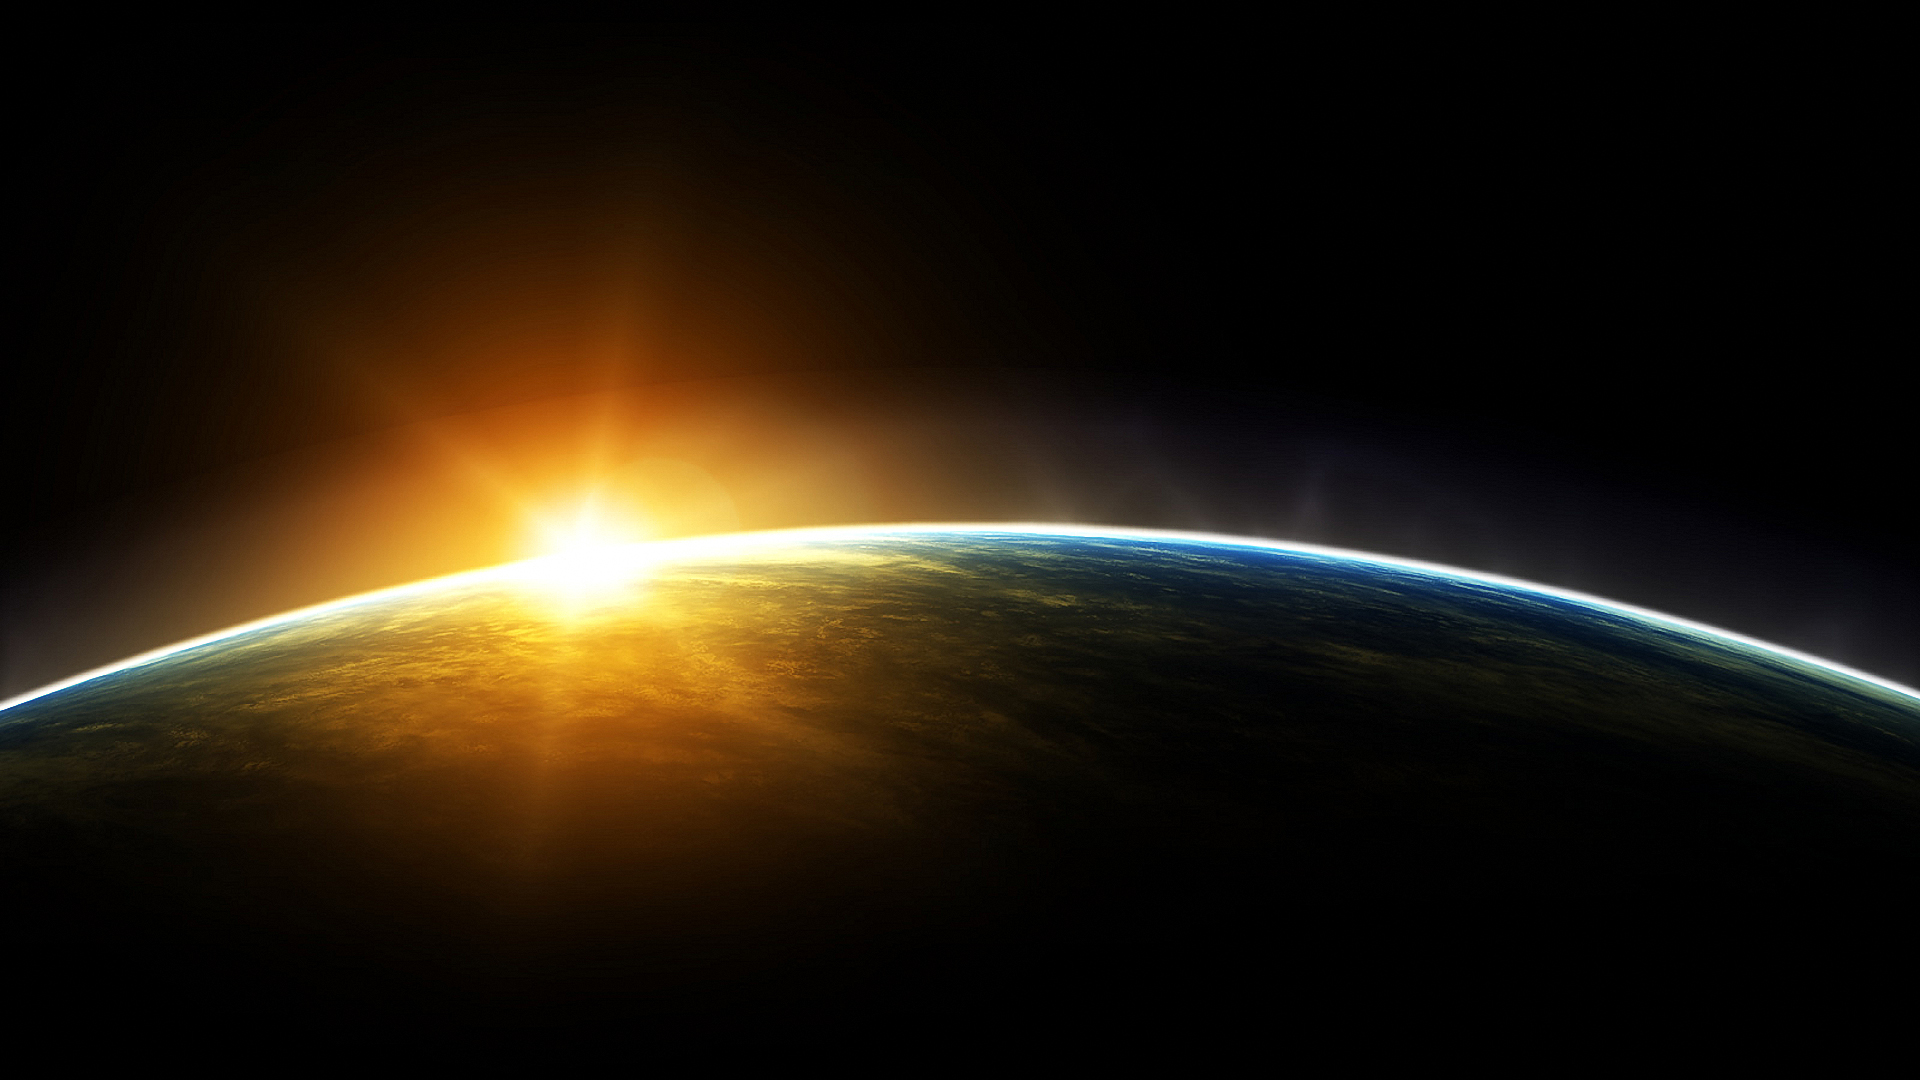 earth-wallpaper-hd-18